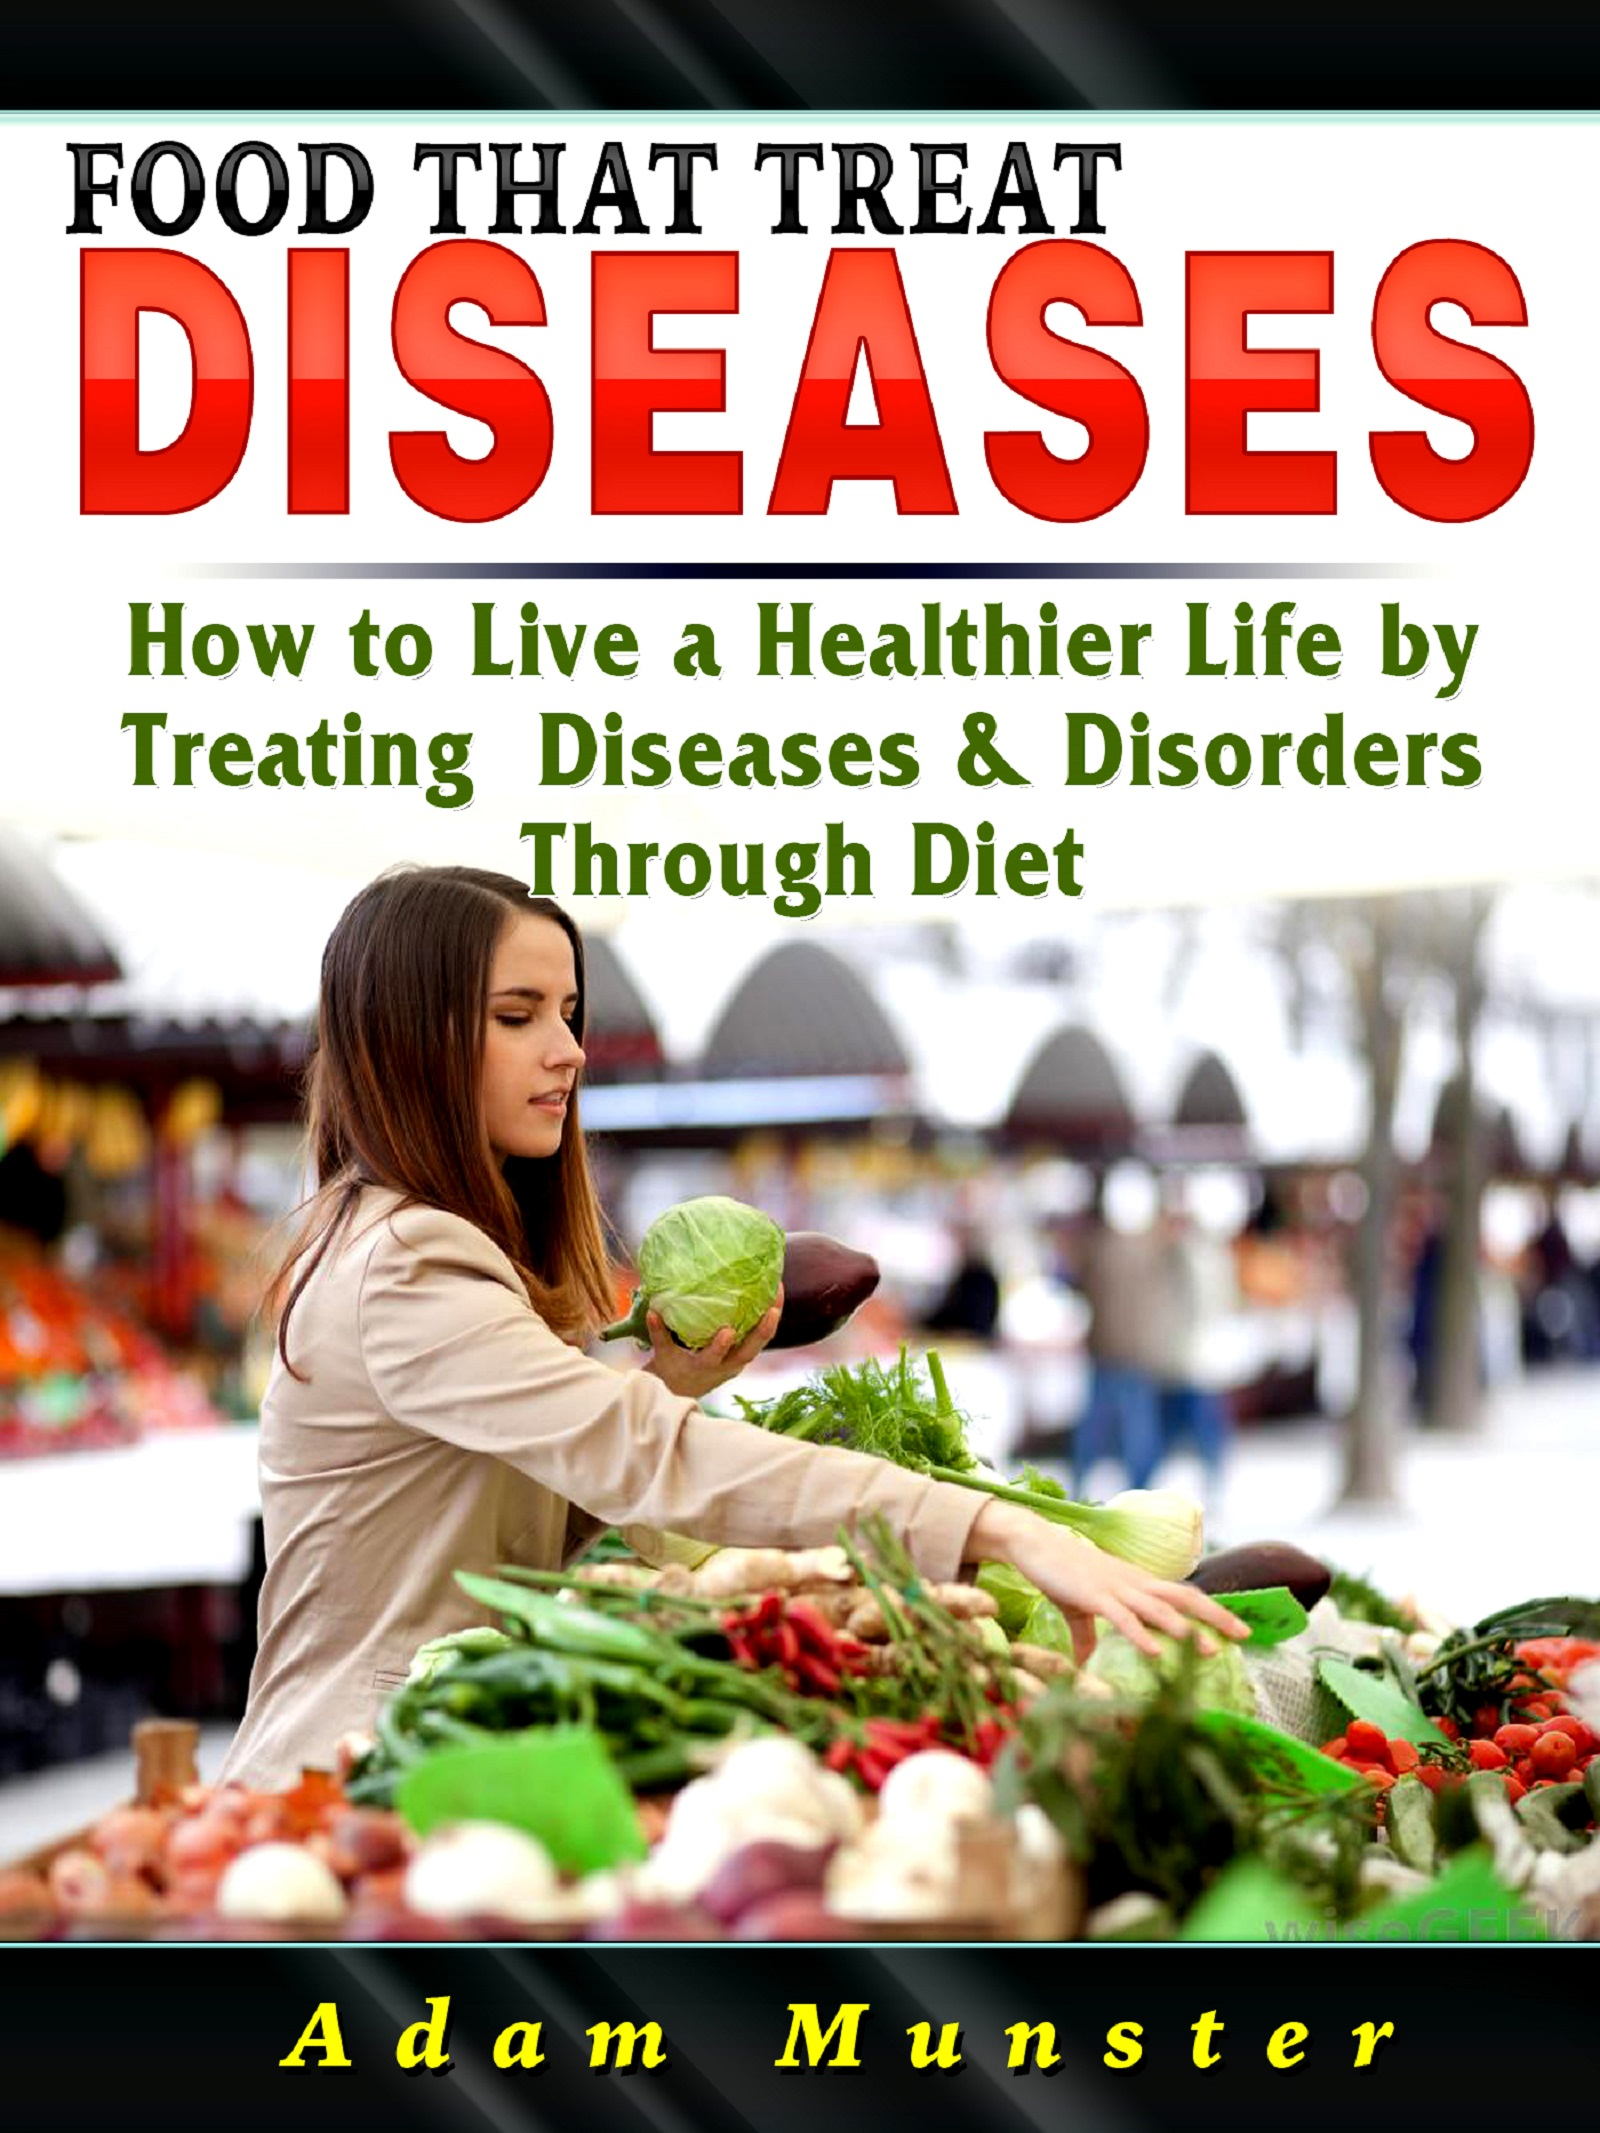 Foods that treat diseases: how to live a healthier life by treating diseases through diet